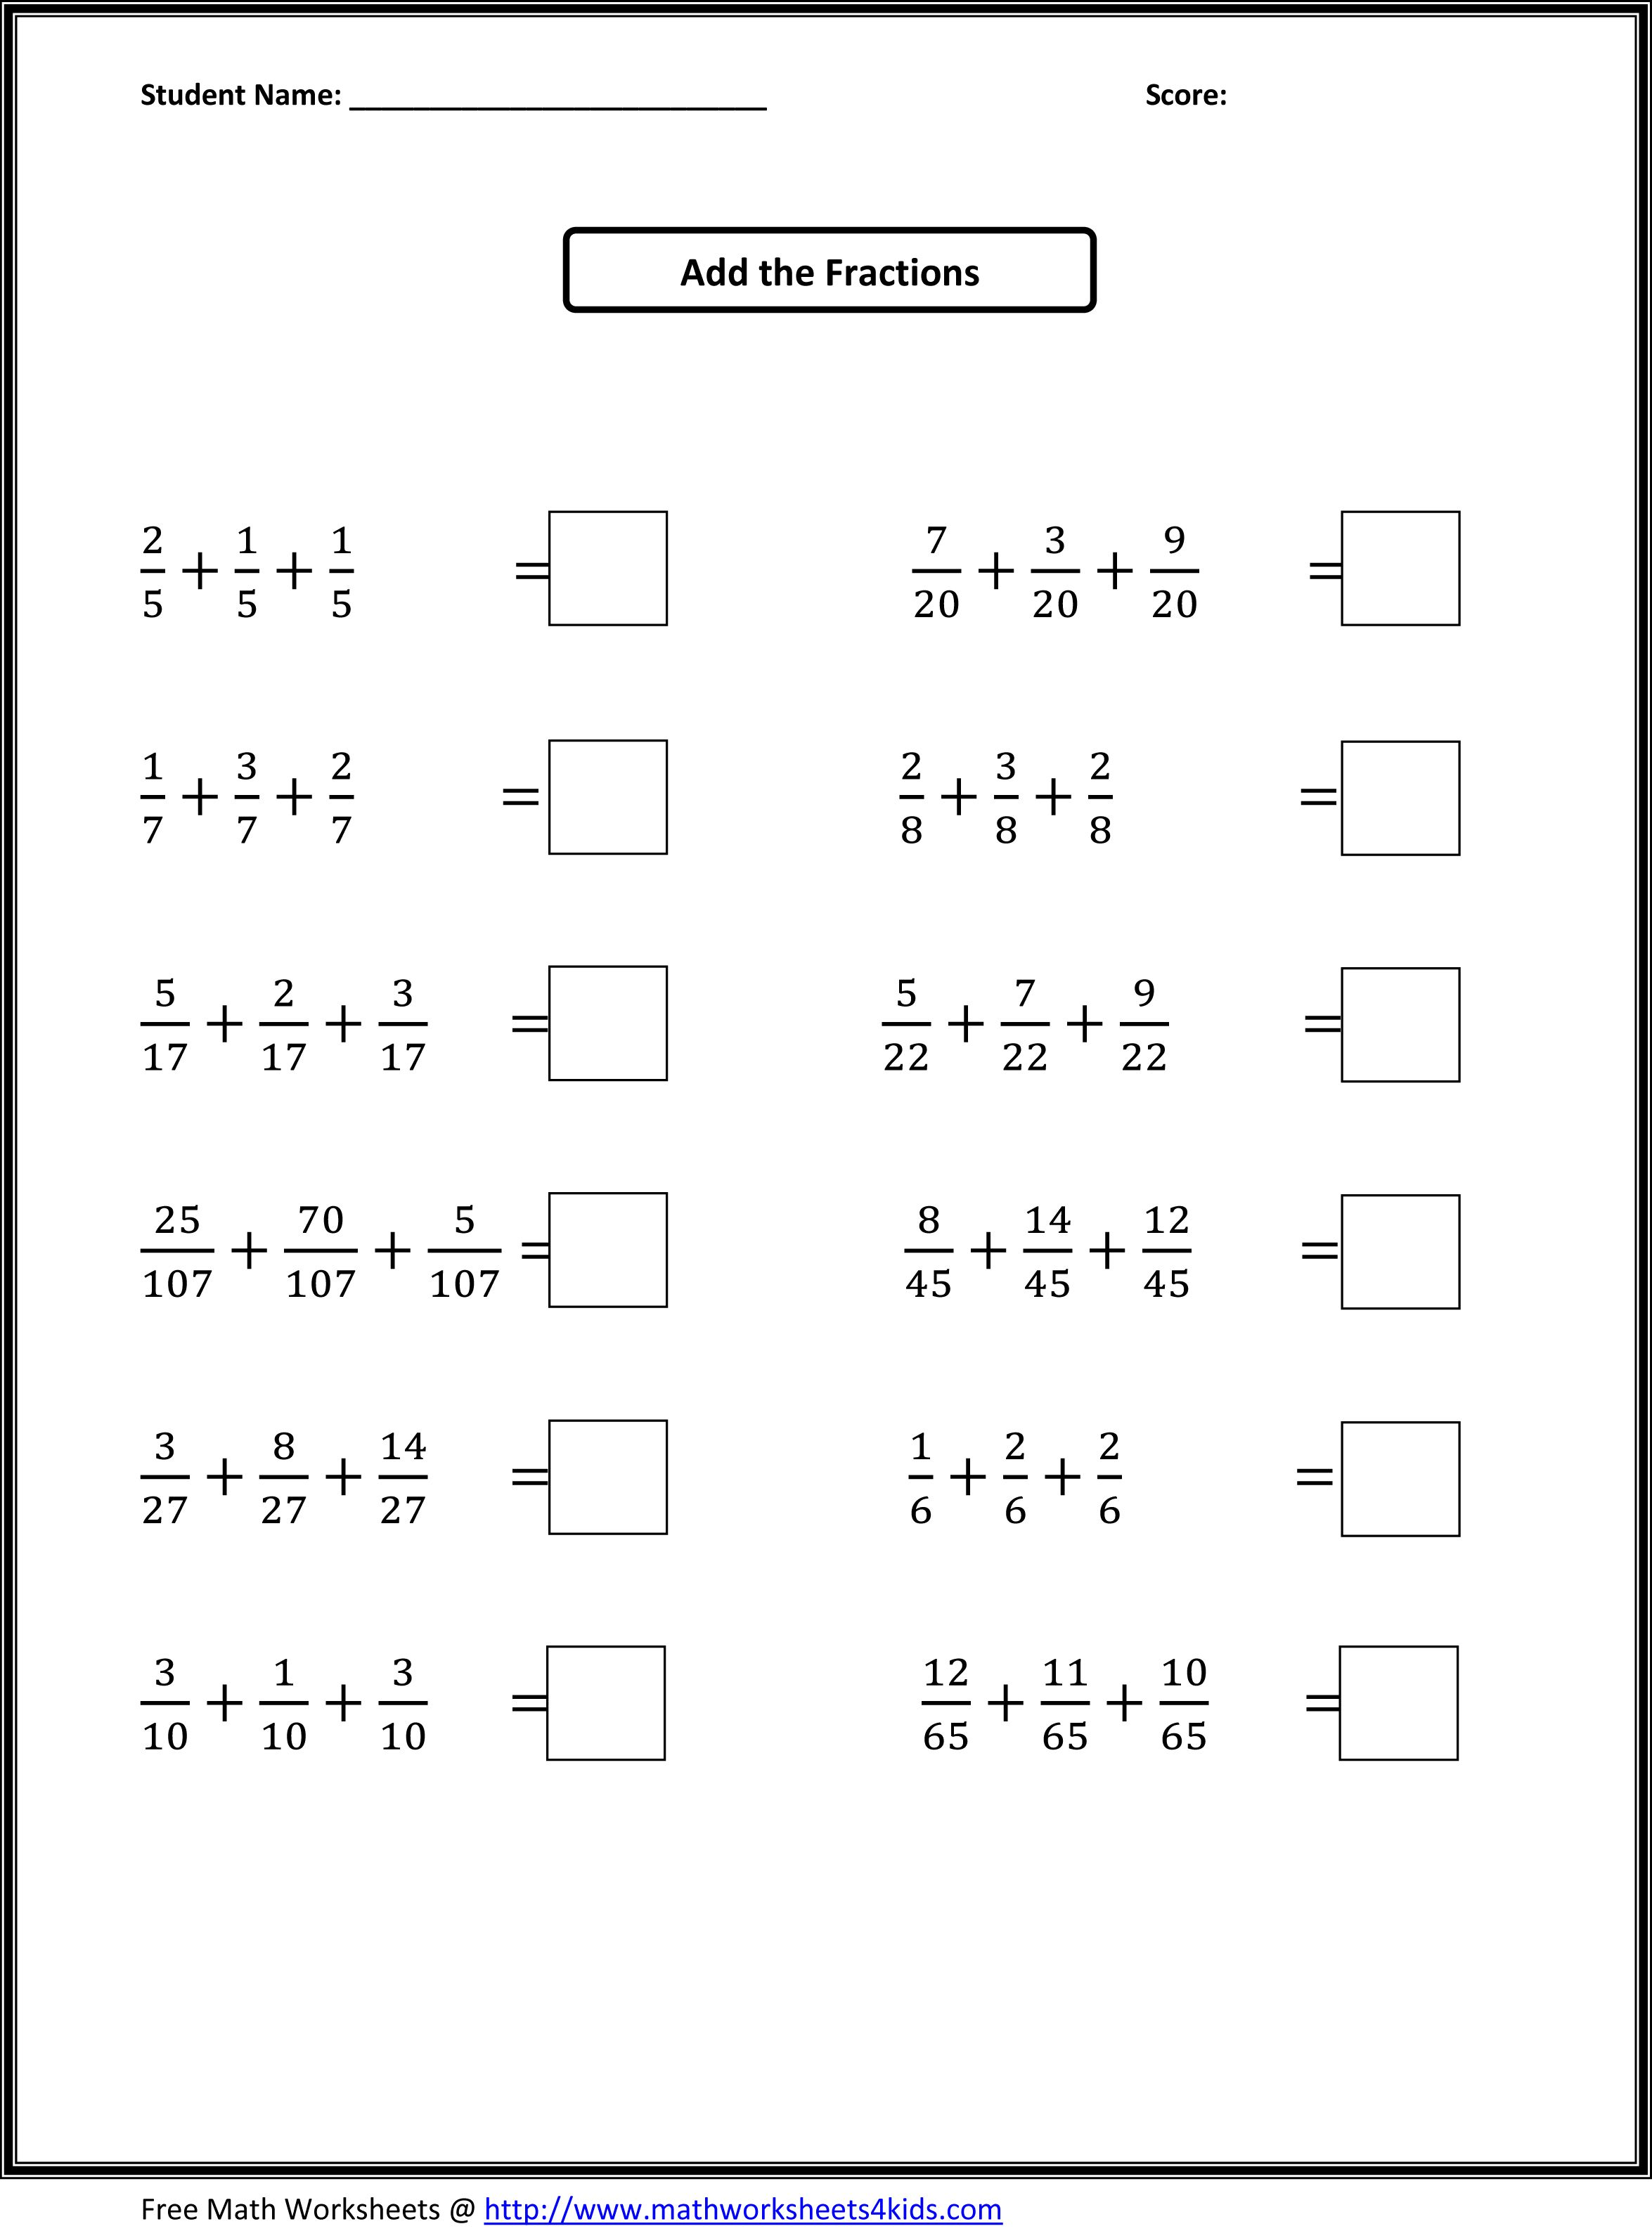 Printables Fourth Grade Worksheets 1000 images about beginning of the year worksheet ideas on pinterest fourth grade math homework and search